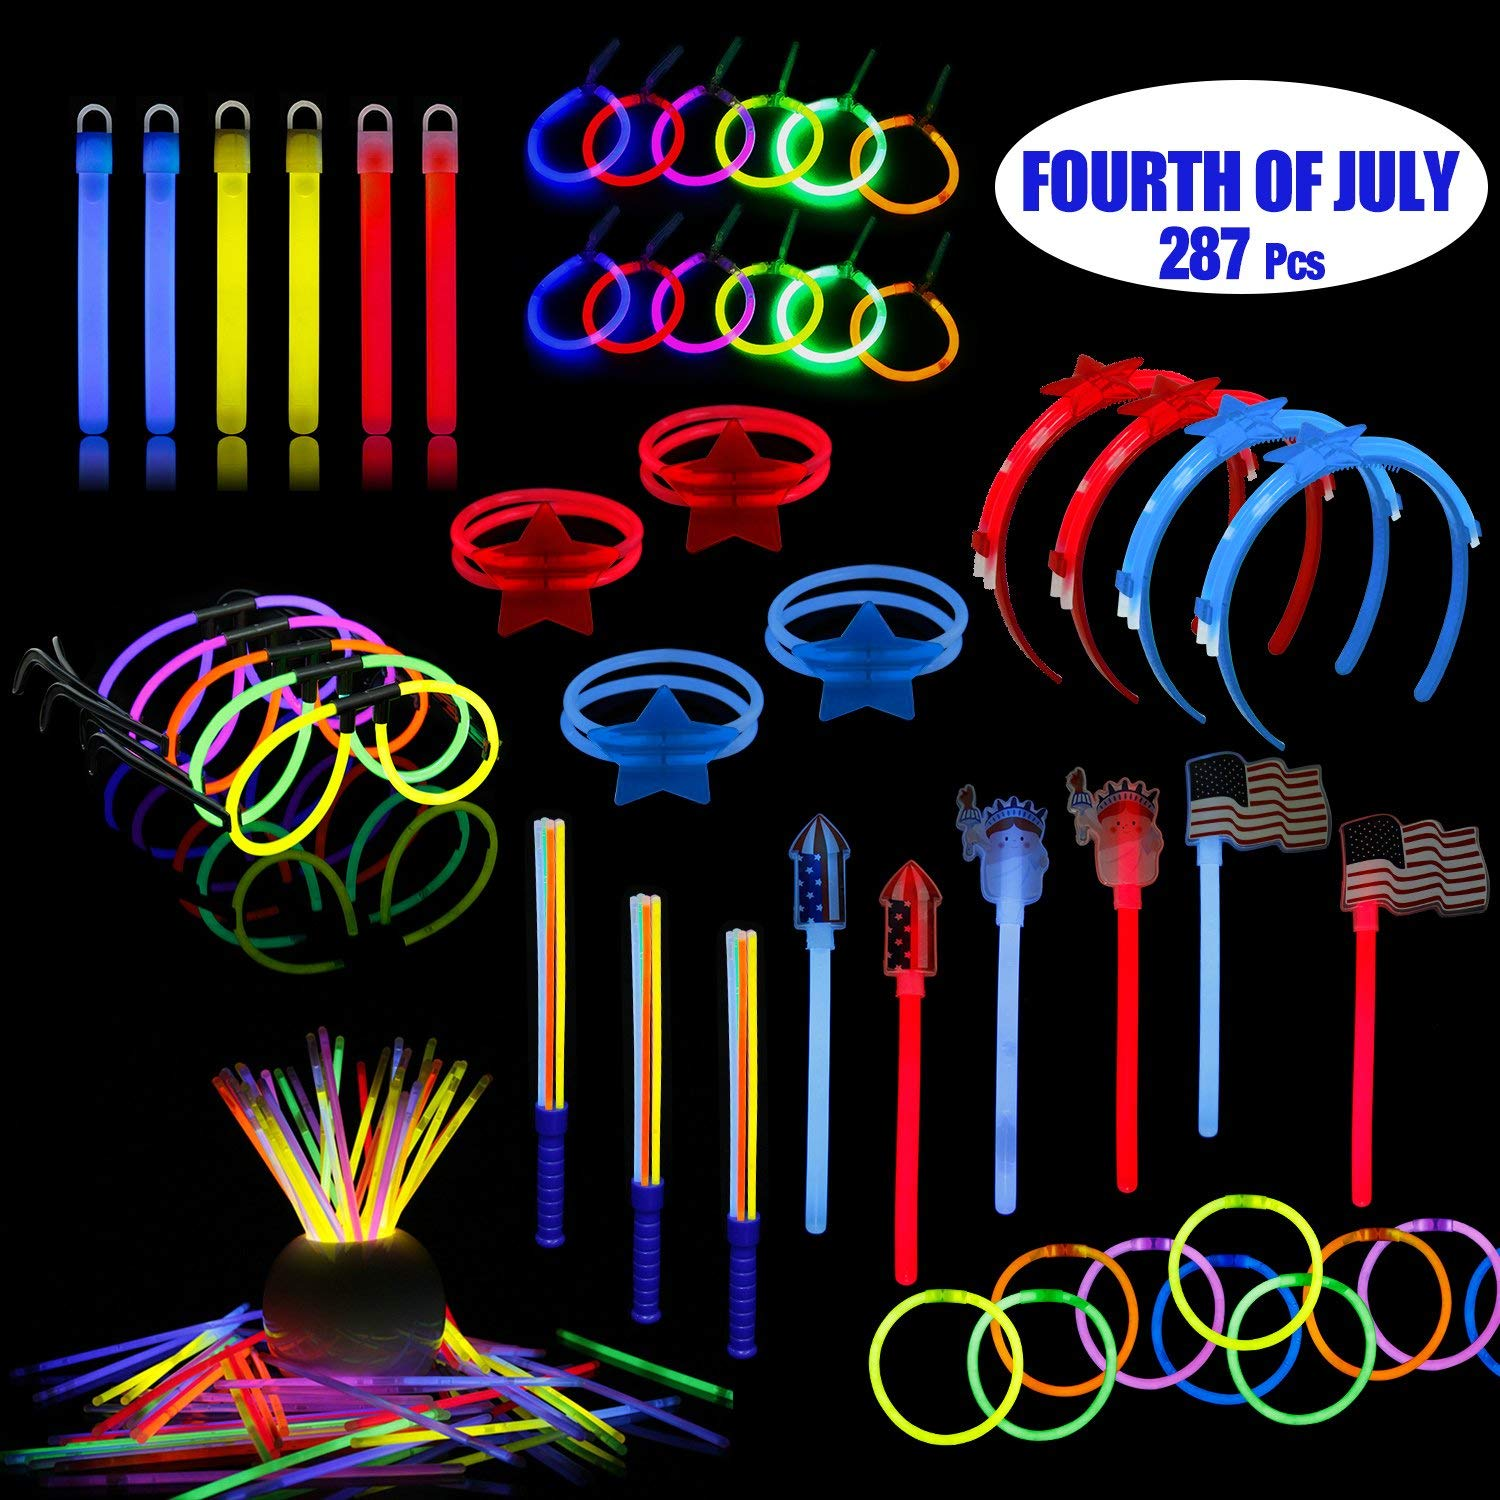 LaRibbons 4th of July Patriotic Party Supplies, 278 Pack Glow Sticks in Bulk for Memorial Day, Veteran's Day, Assortment Include American Flag, Bracelets, Necklace, Glasses, Magic Wands and More